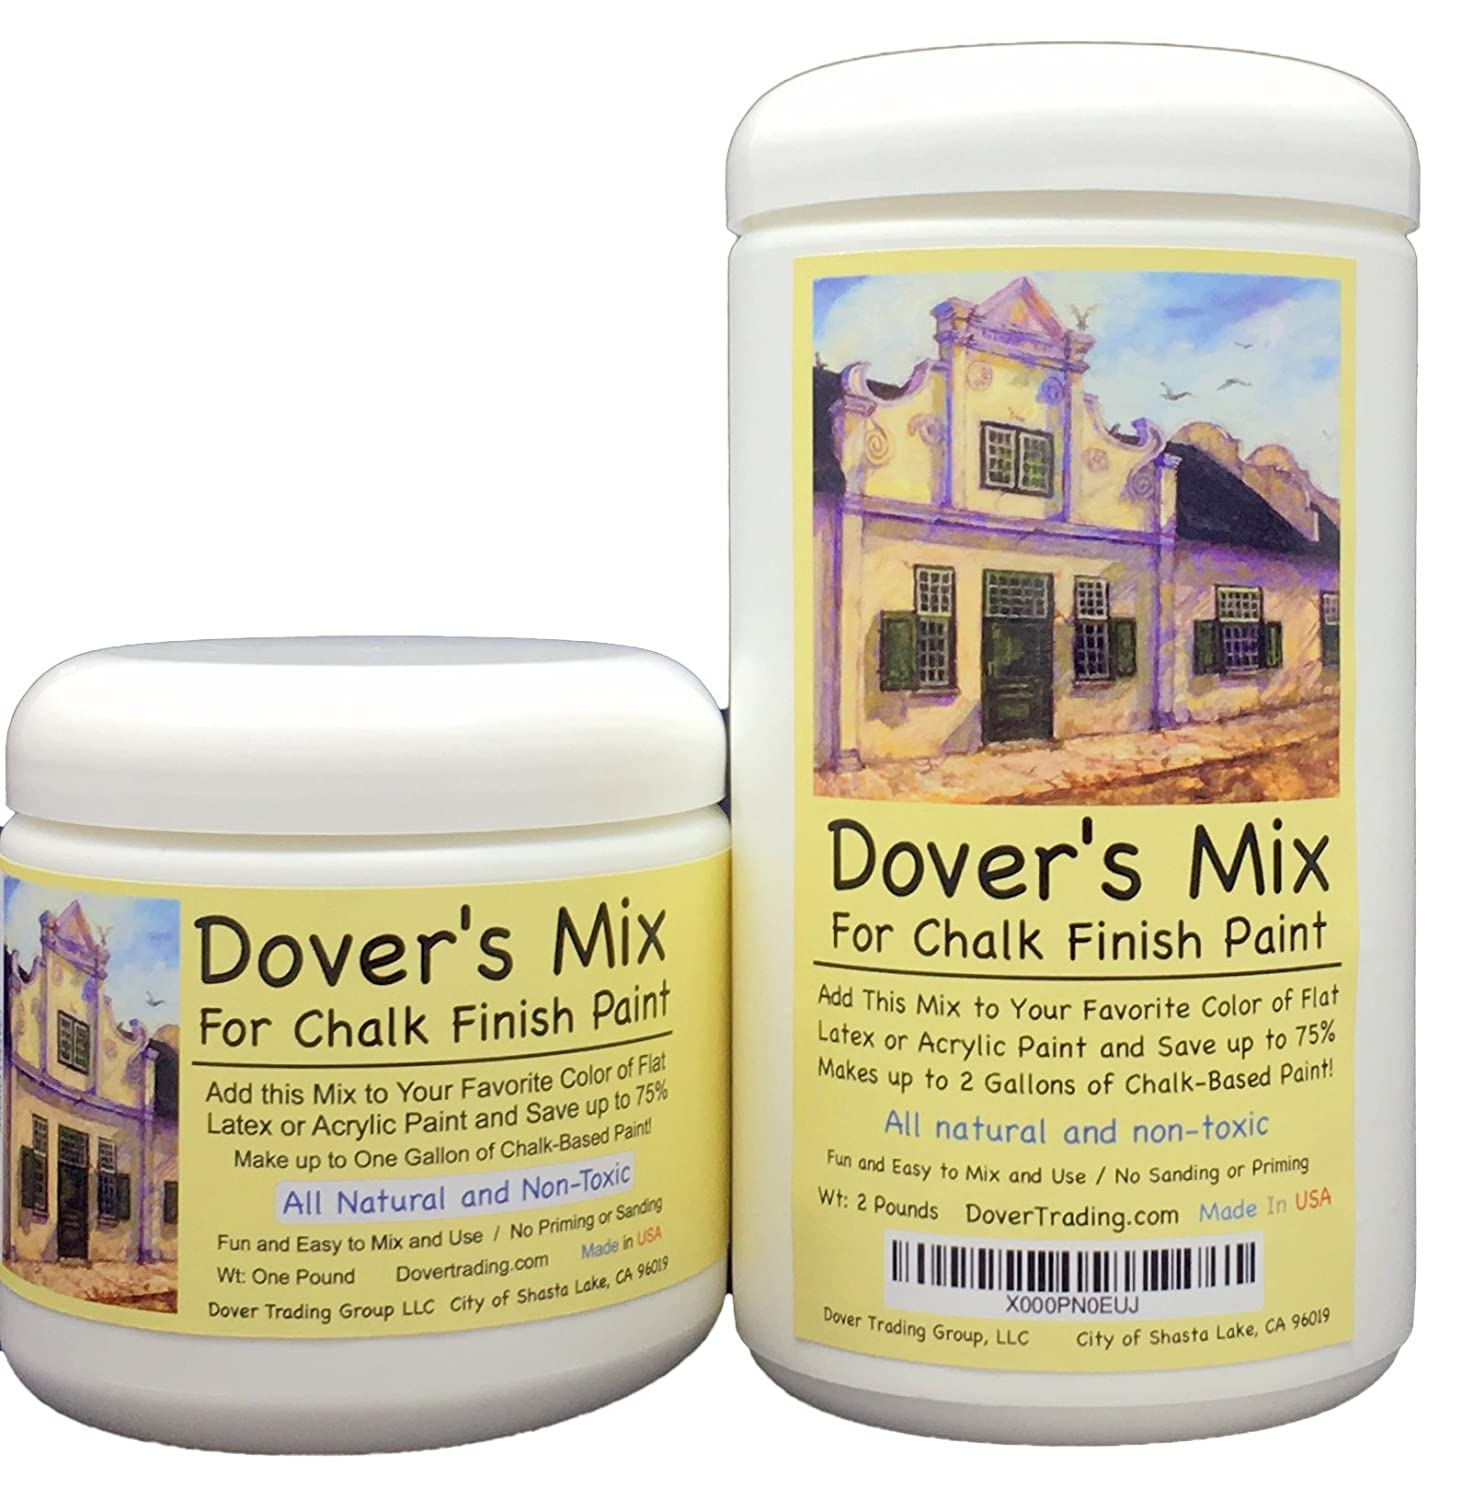 Amazon.com: Chalk Finish Paint Mix by Dover\'s – Add to any Color of ...